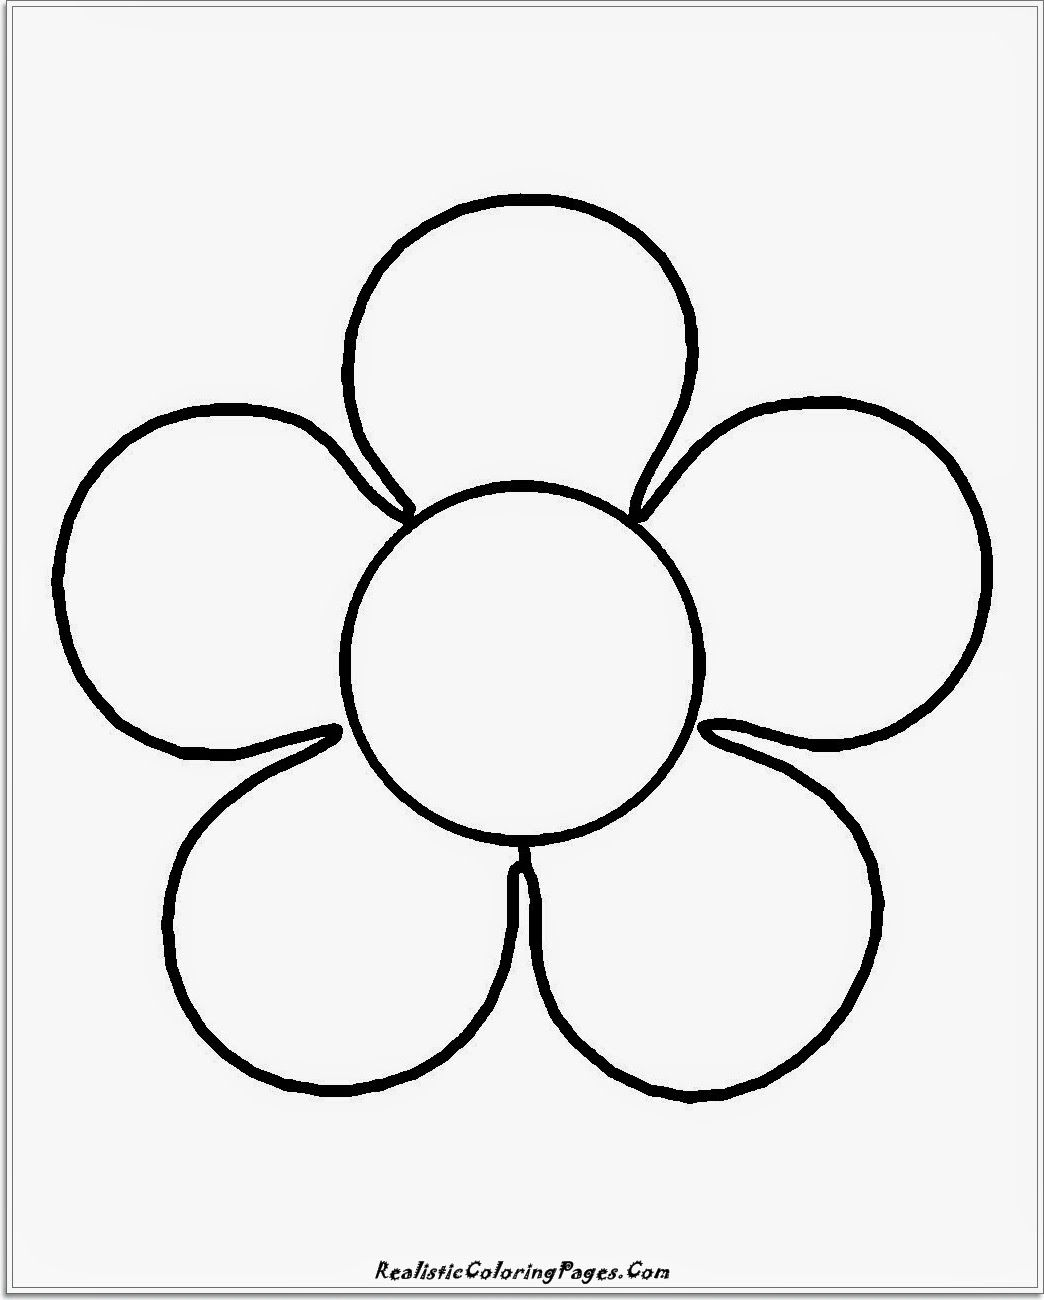 easy coloring pages of flowers simple flower patterns drawing at getdrawings free download pages flowers of coloring easy